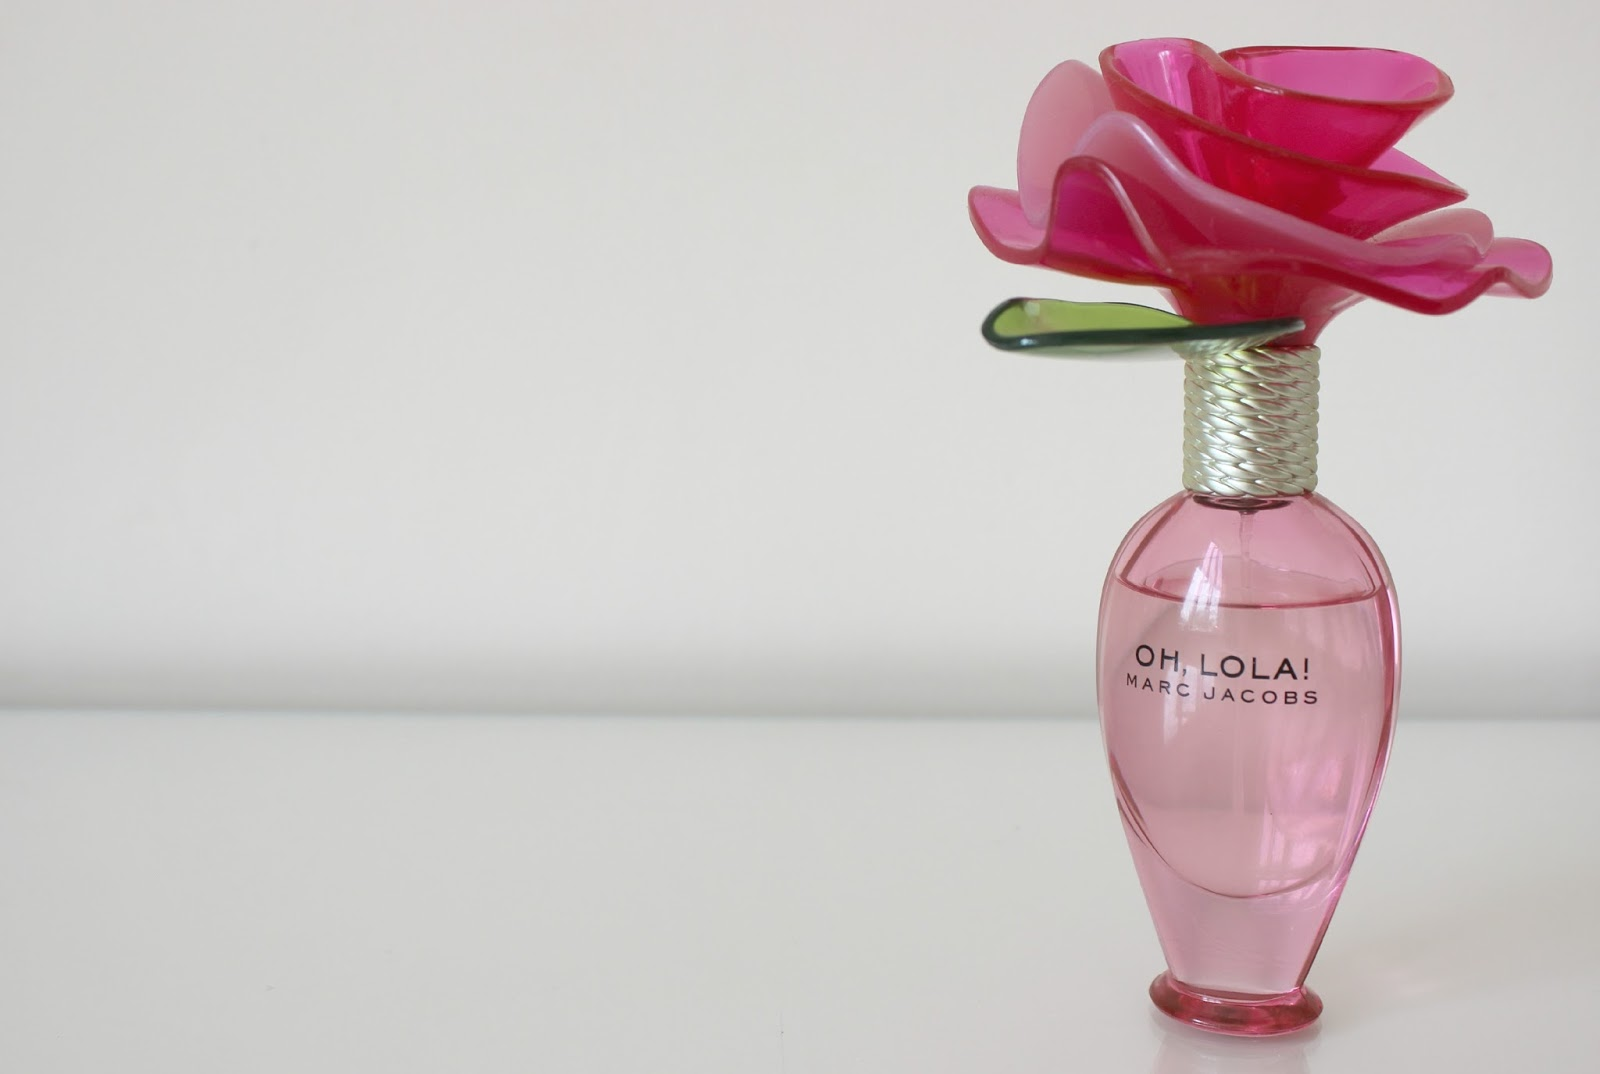 A picture of Marc Jacobs Oh, Lola! Eau de Toilette